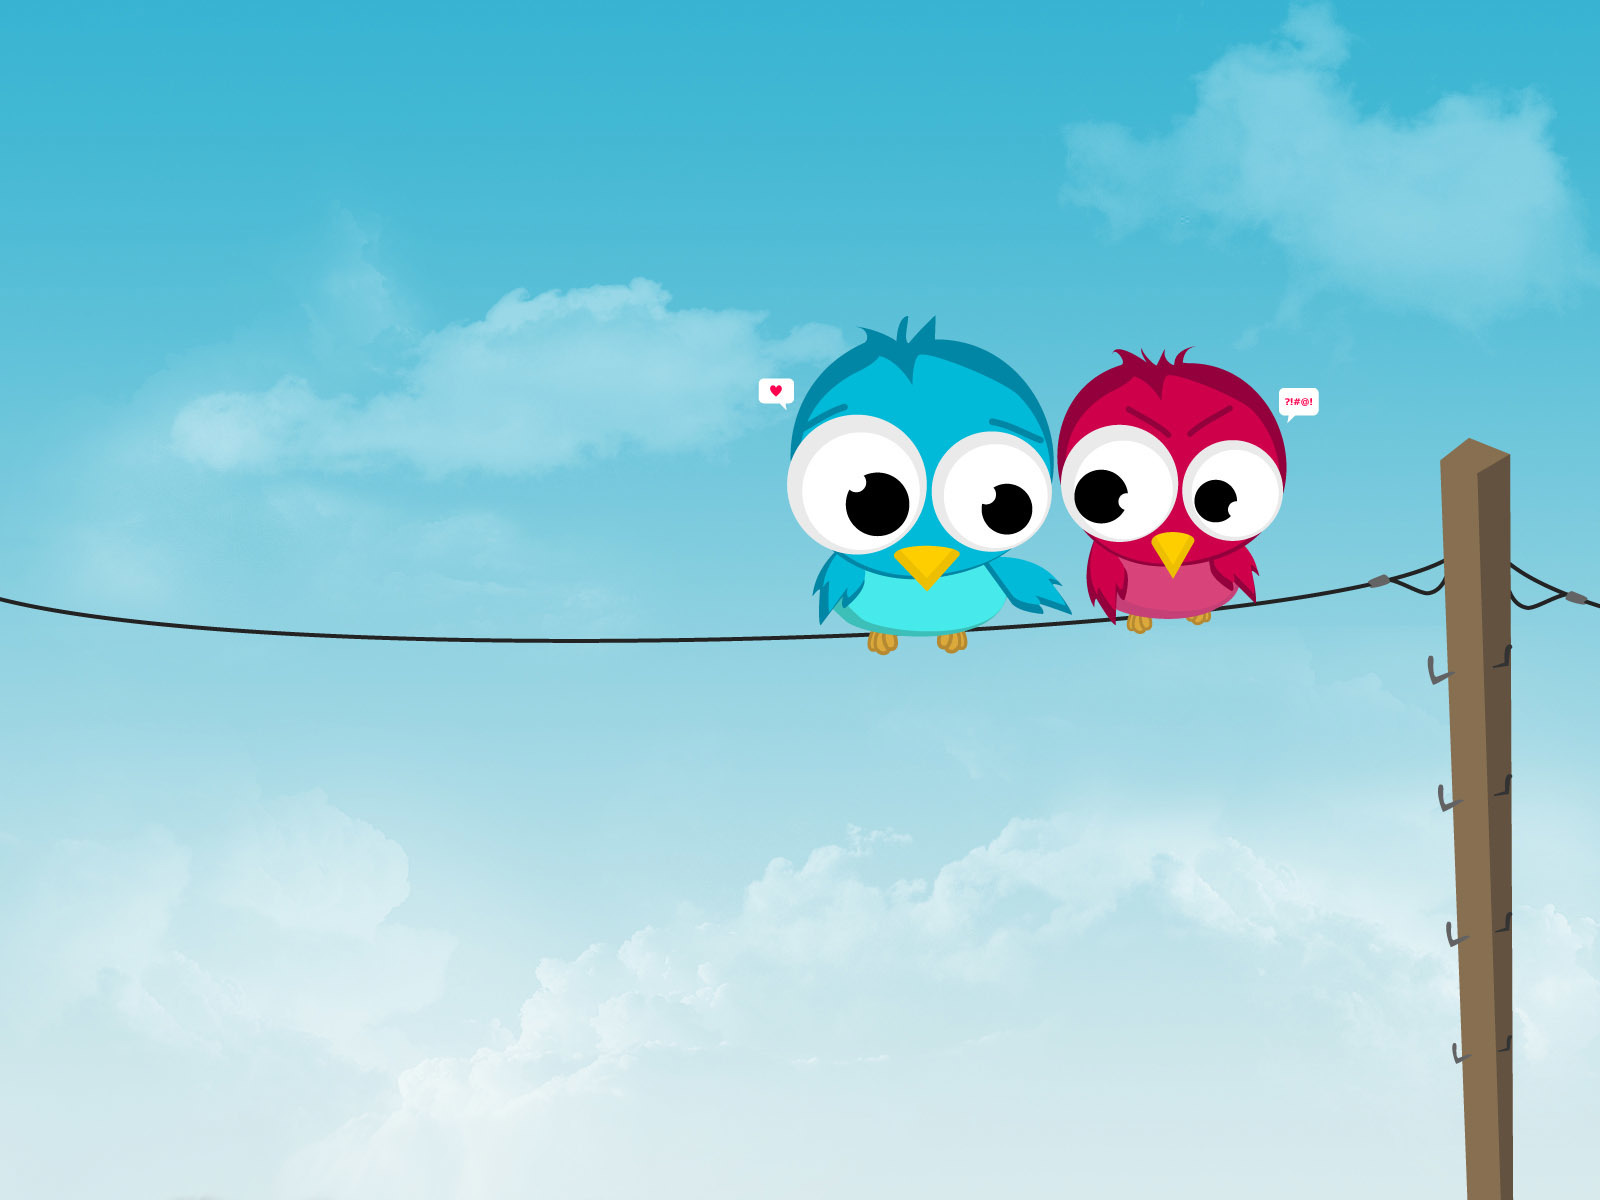 Cute-Wallpaper-Pictures-19